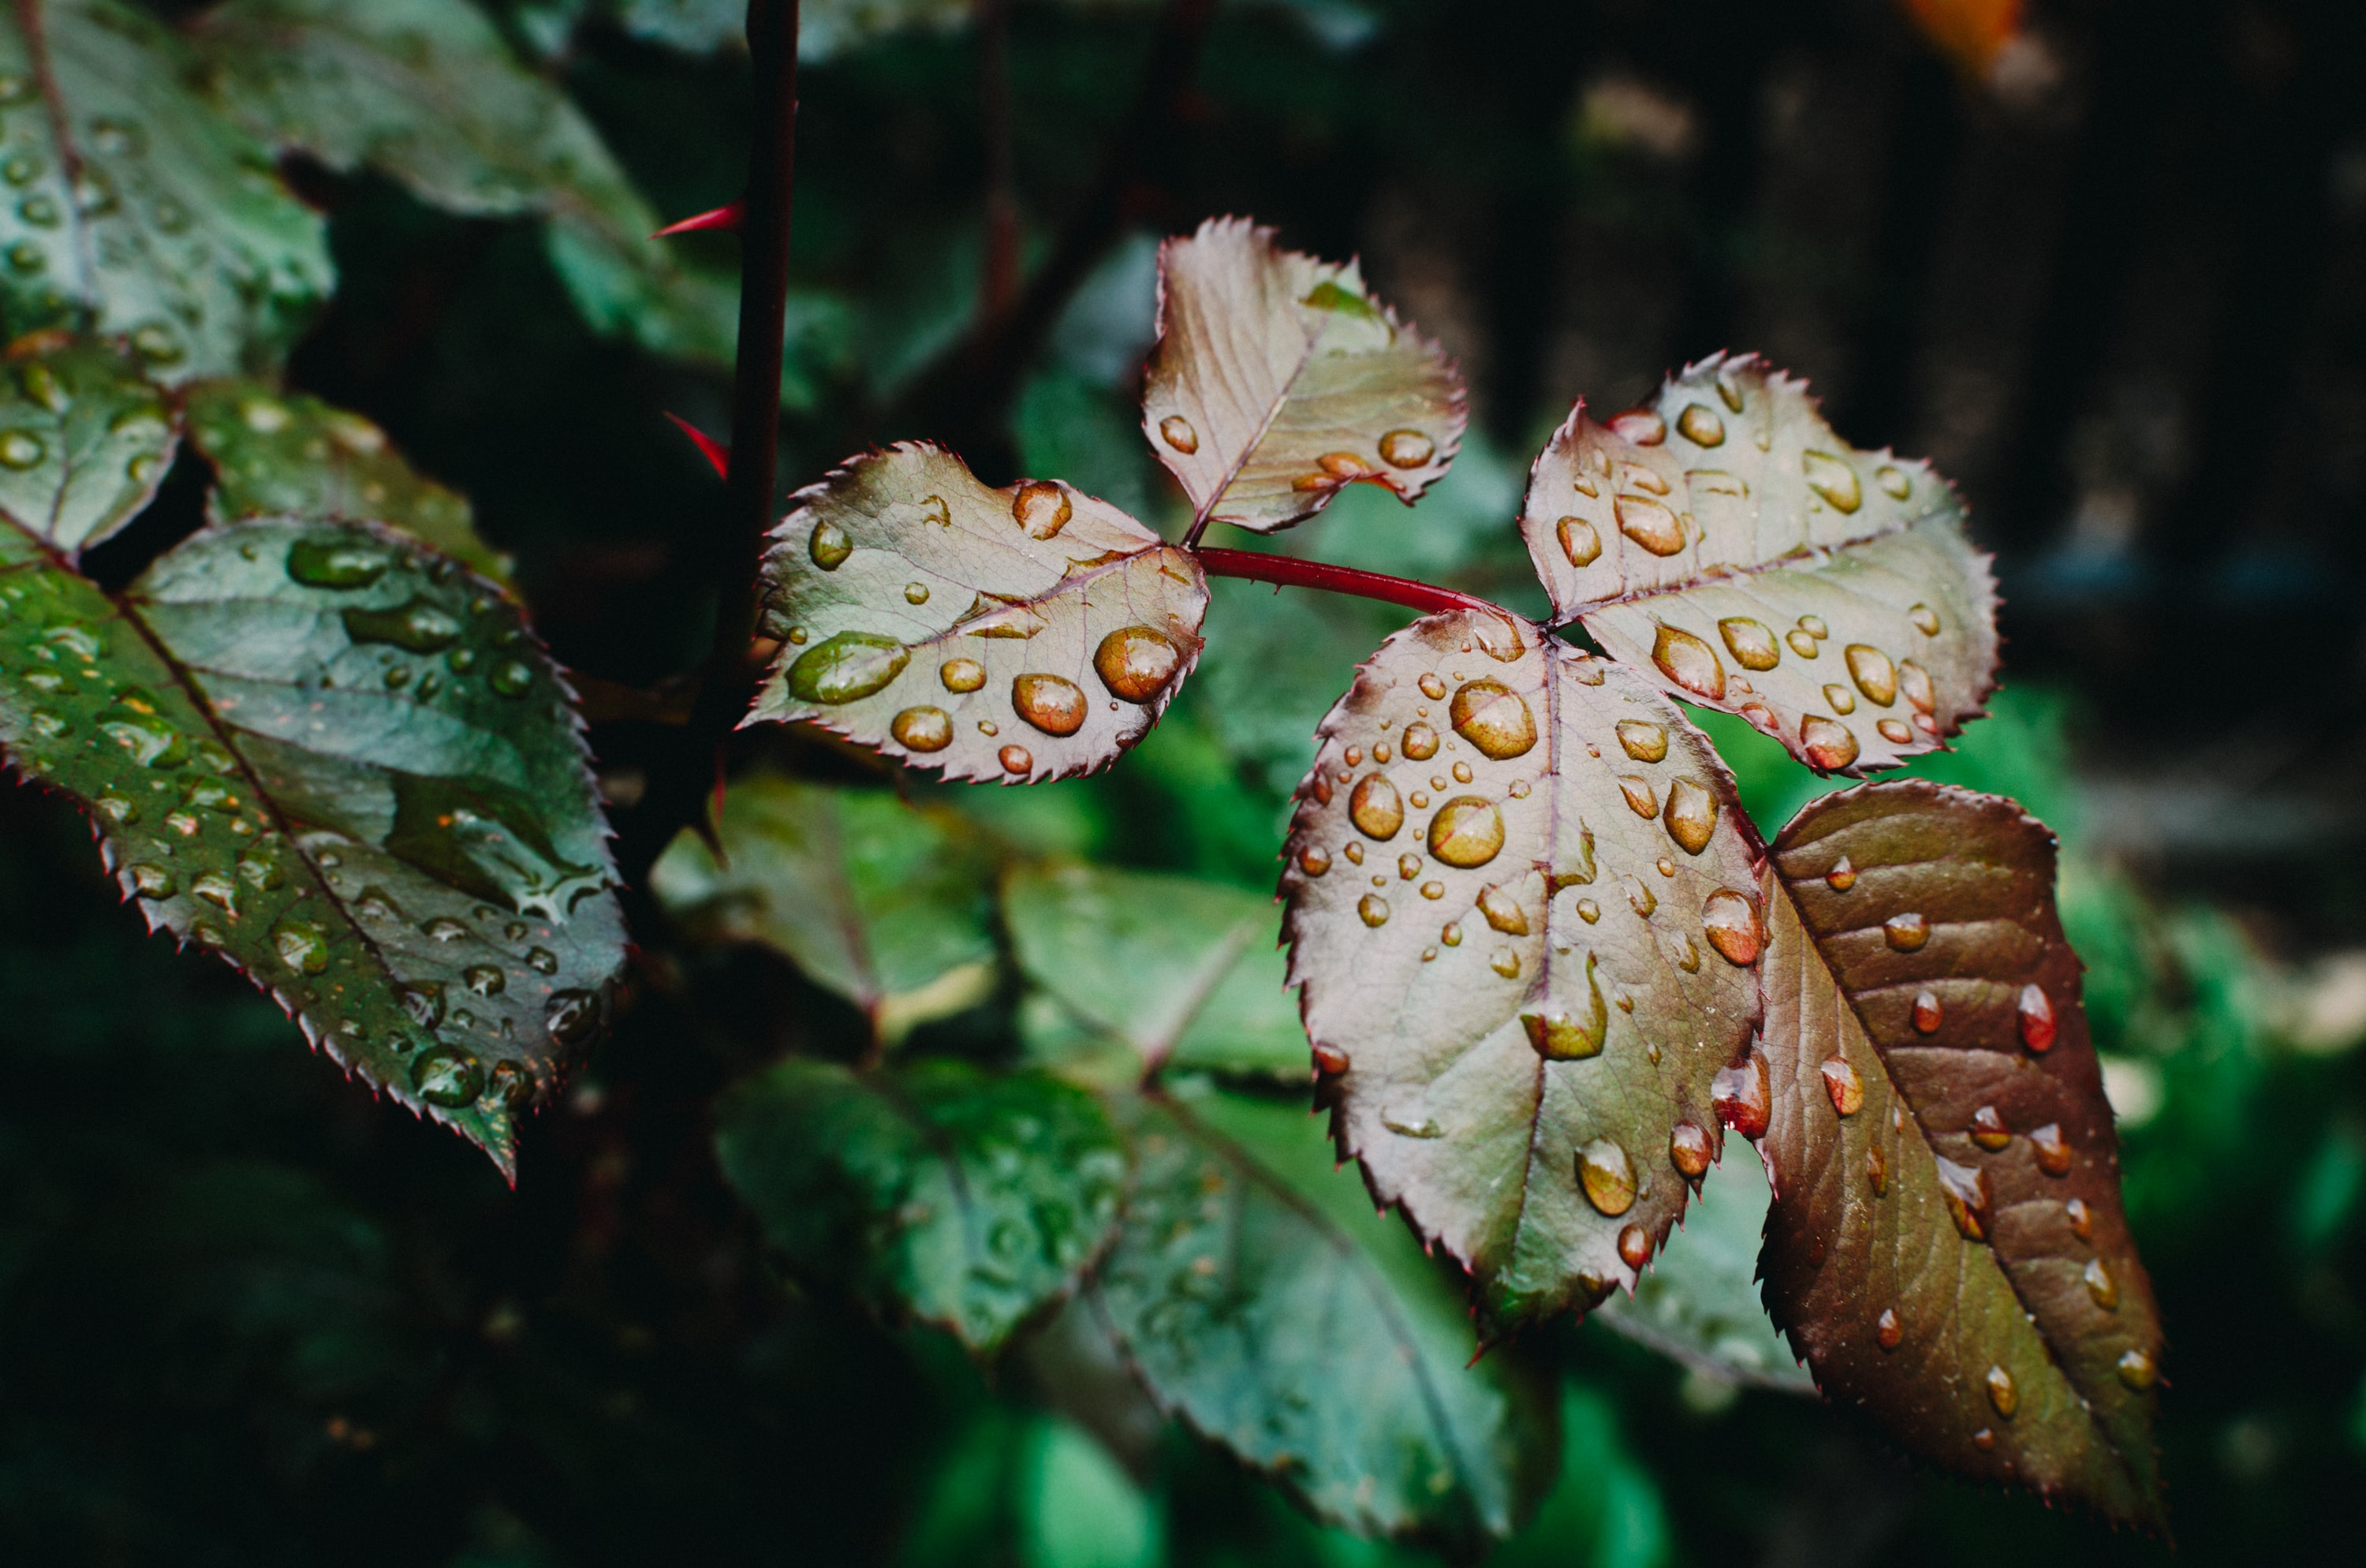 Droplets of water on serrated leaves